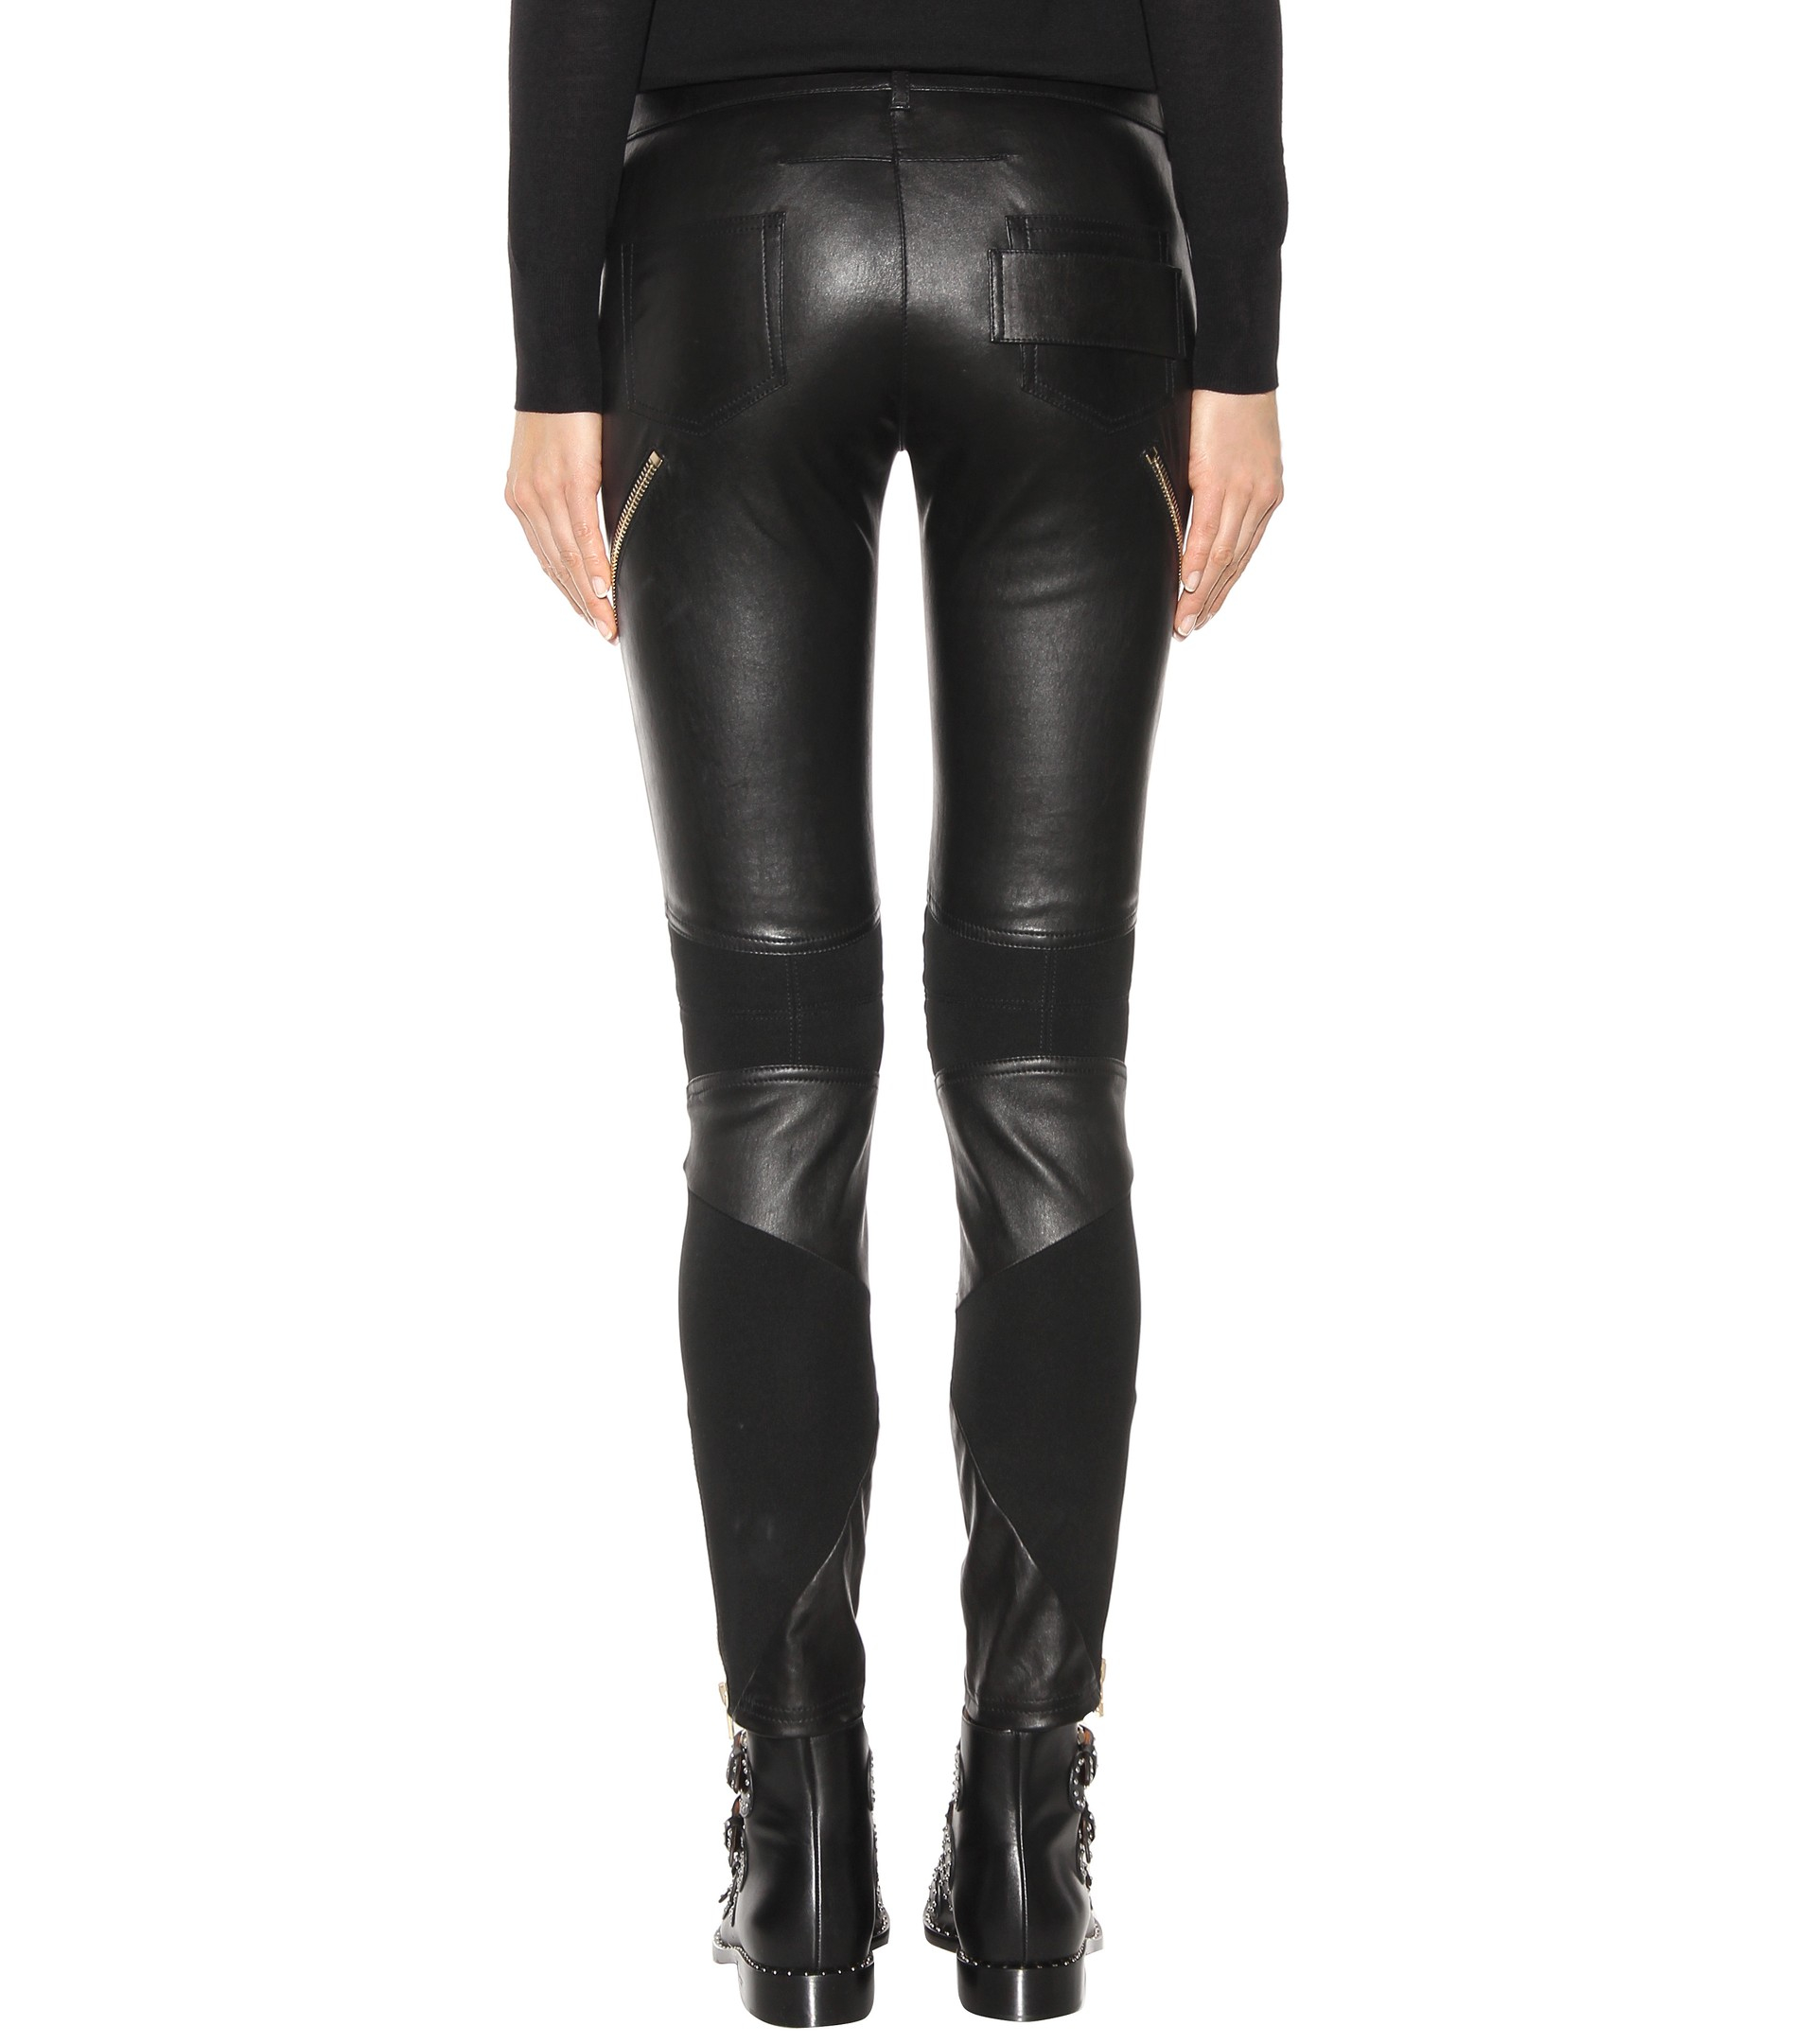 Cheap Free Shipping Outlet Store Online Leather trousers Givenchy Super Buy Cheap Best Prices Low Shipping Fee Cheap Price 8pPmBHcbVx